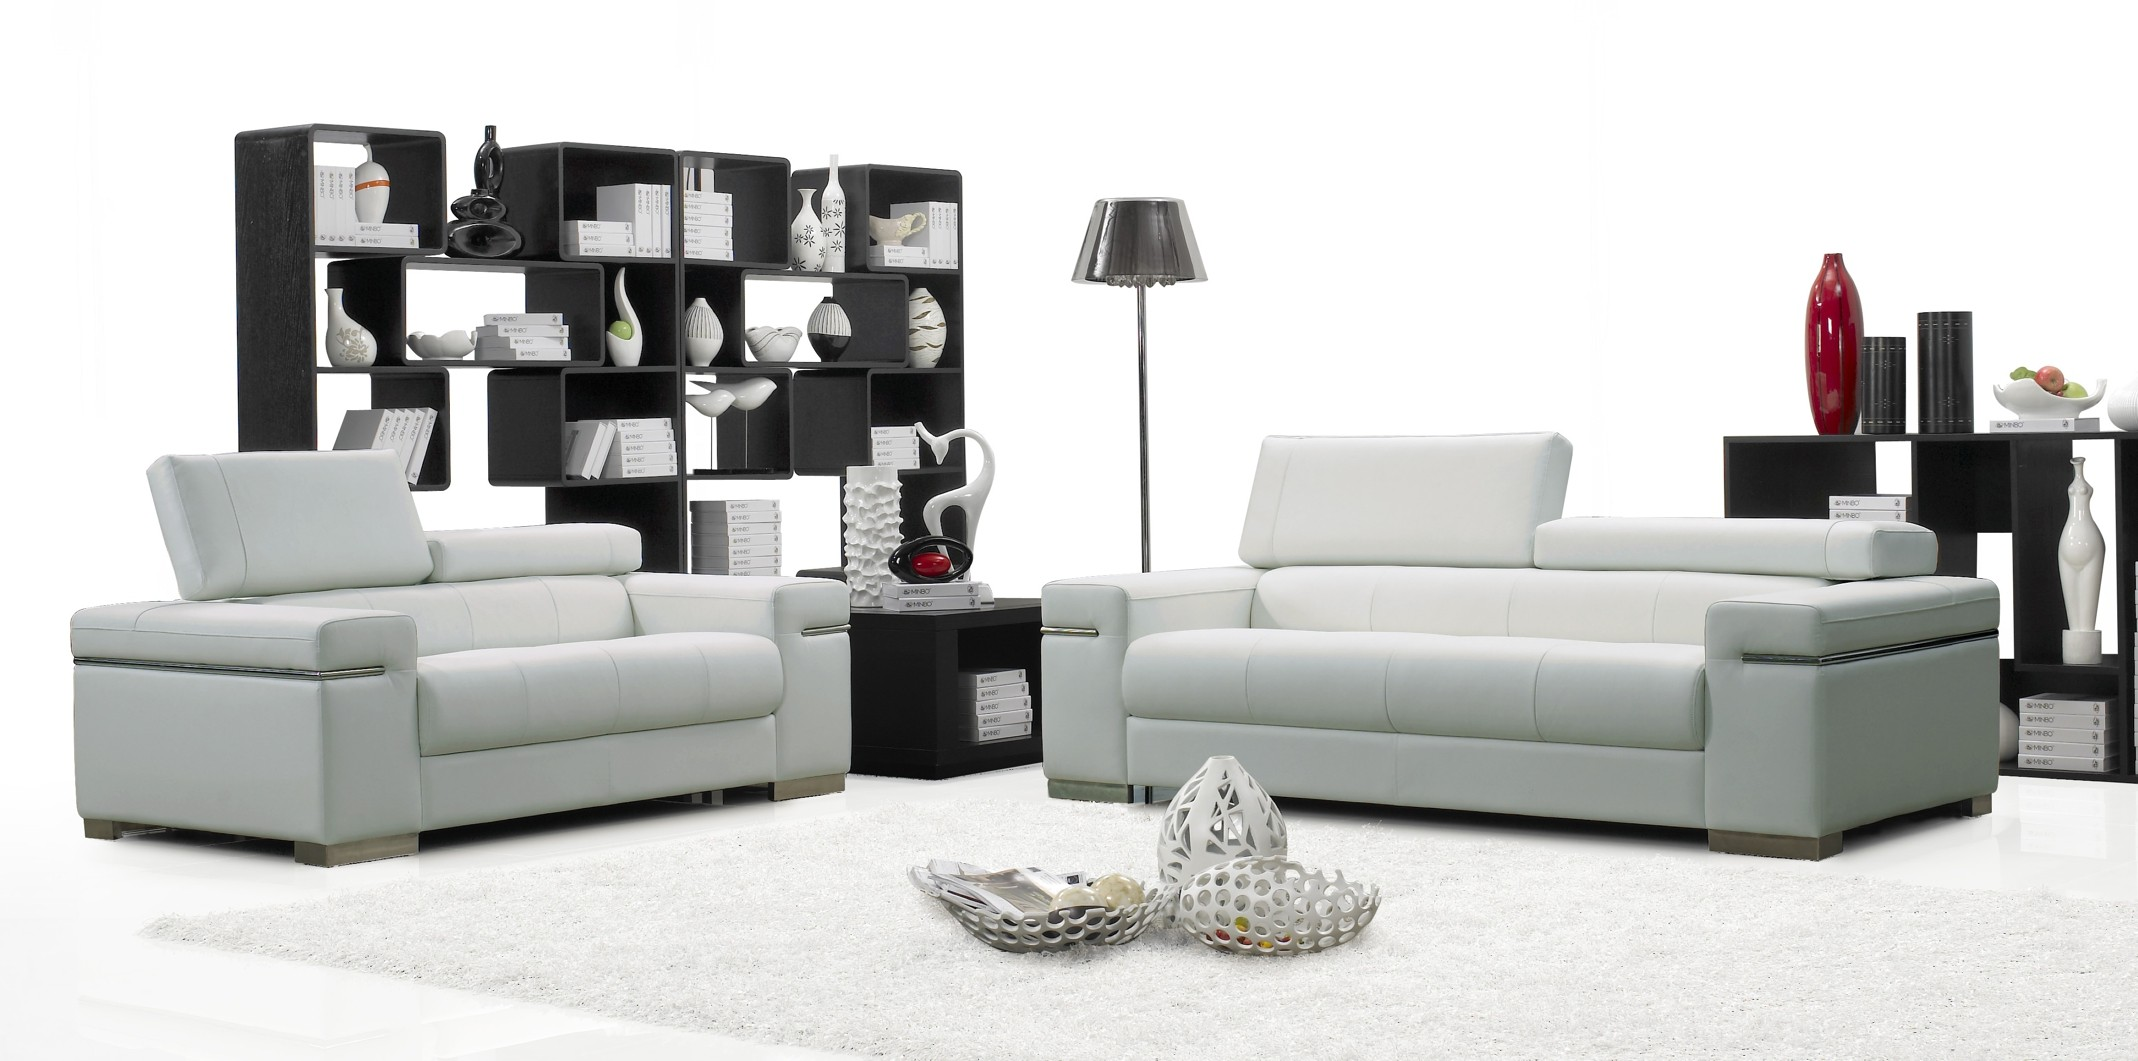 True modern furniture online homesfeed for Furniture design